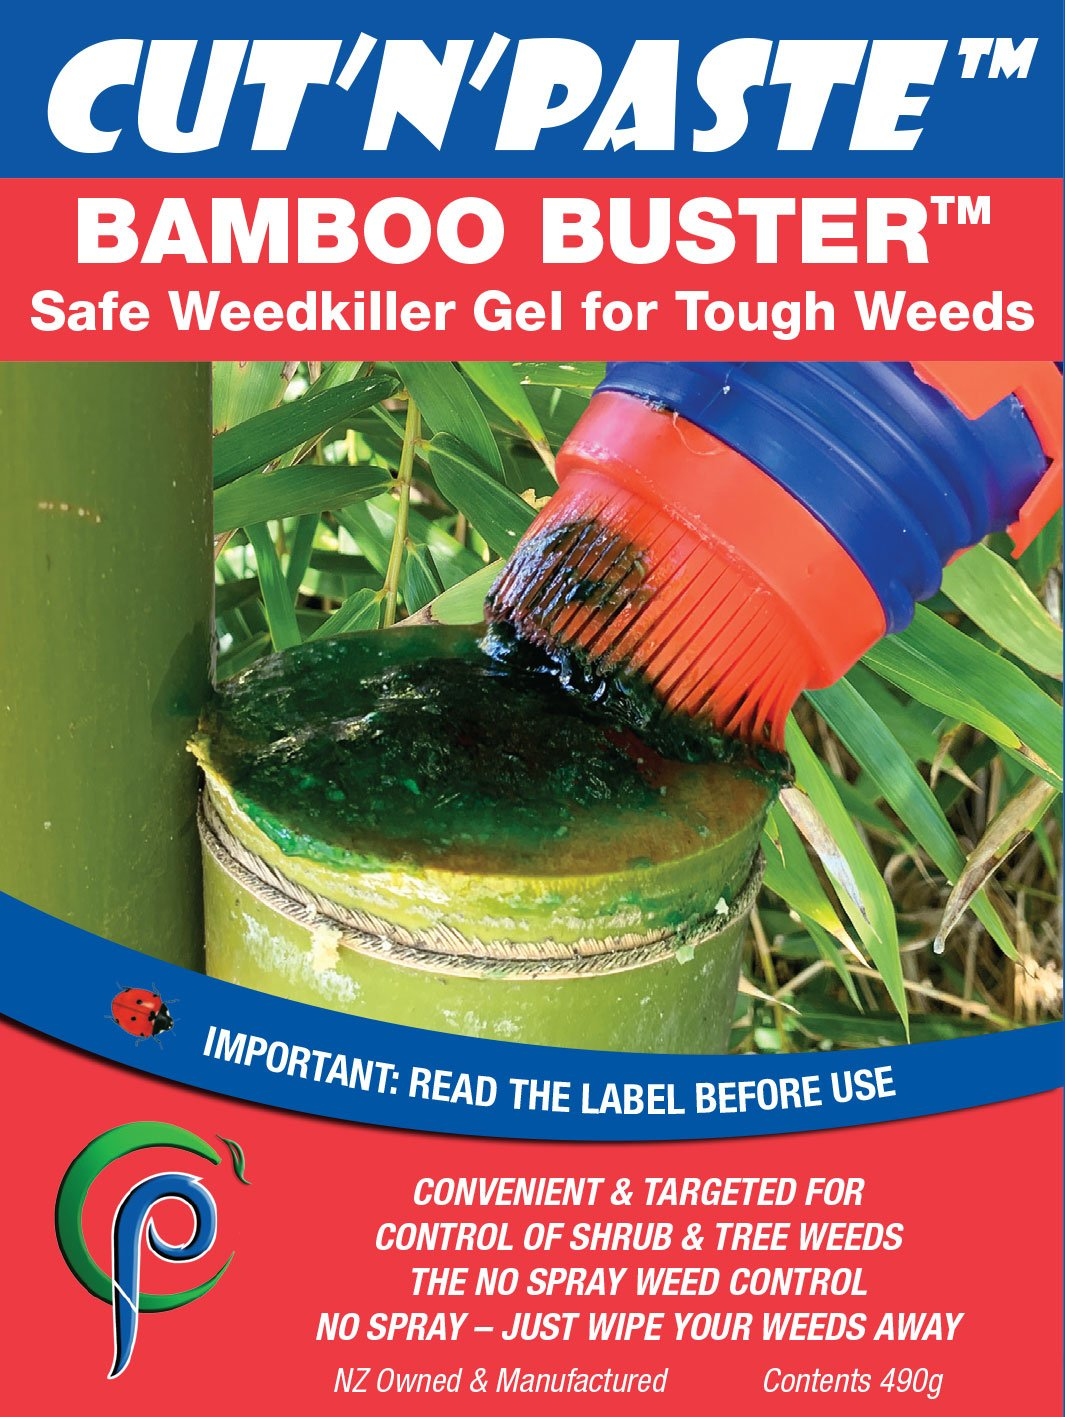 Bamboo Buster Cut'n'Paste